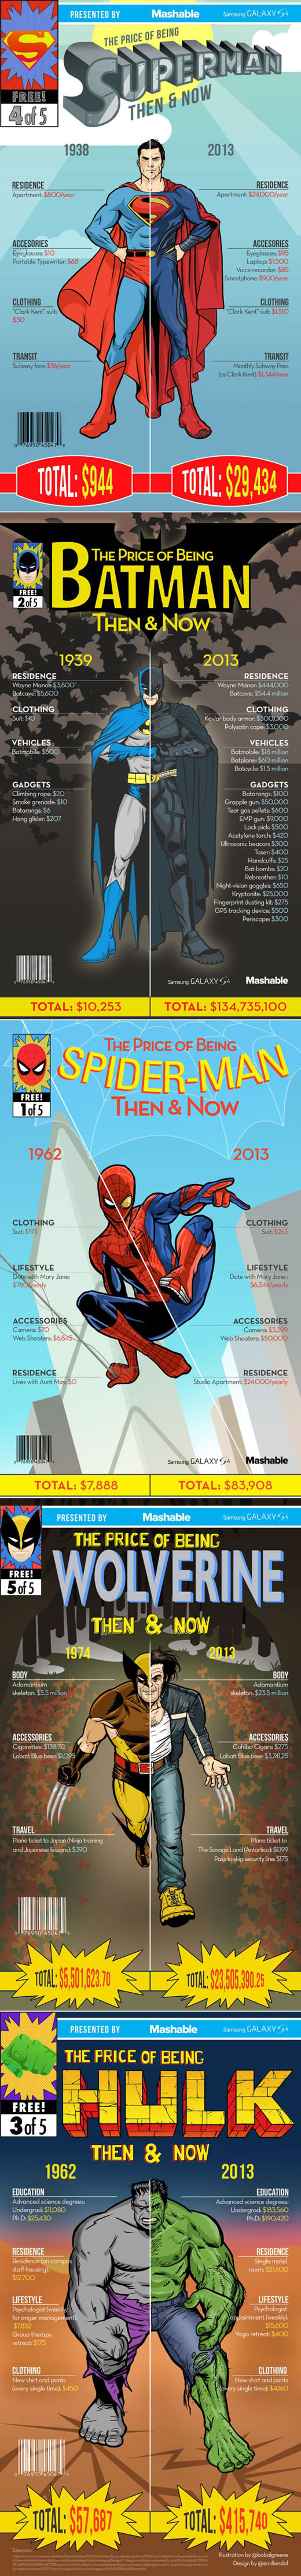 The price of being a superheroe then and now…